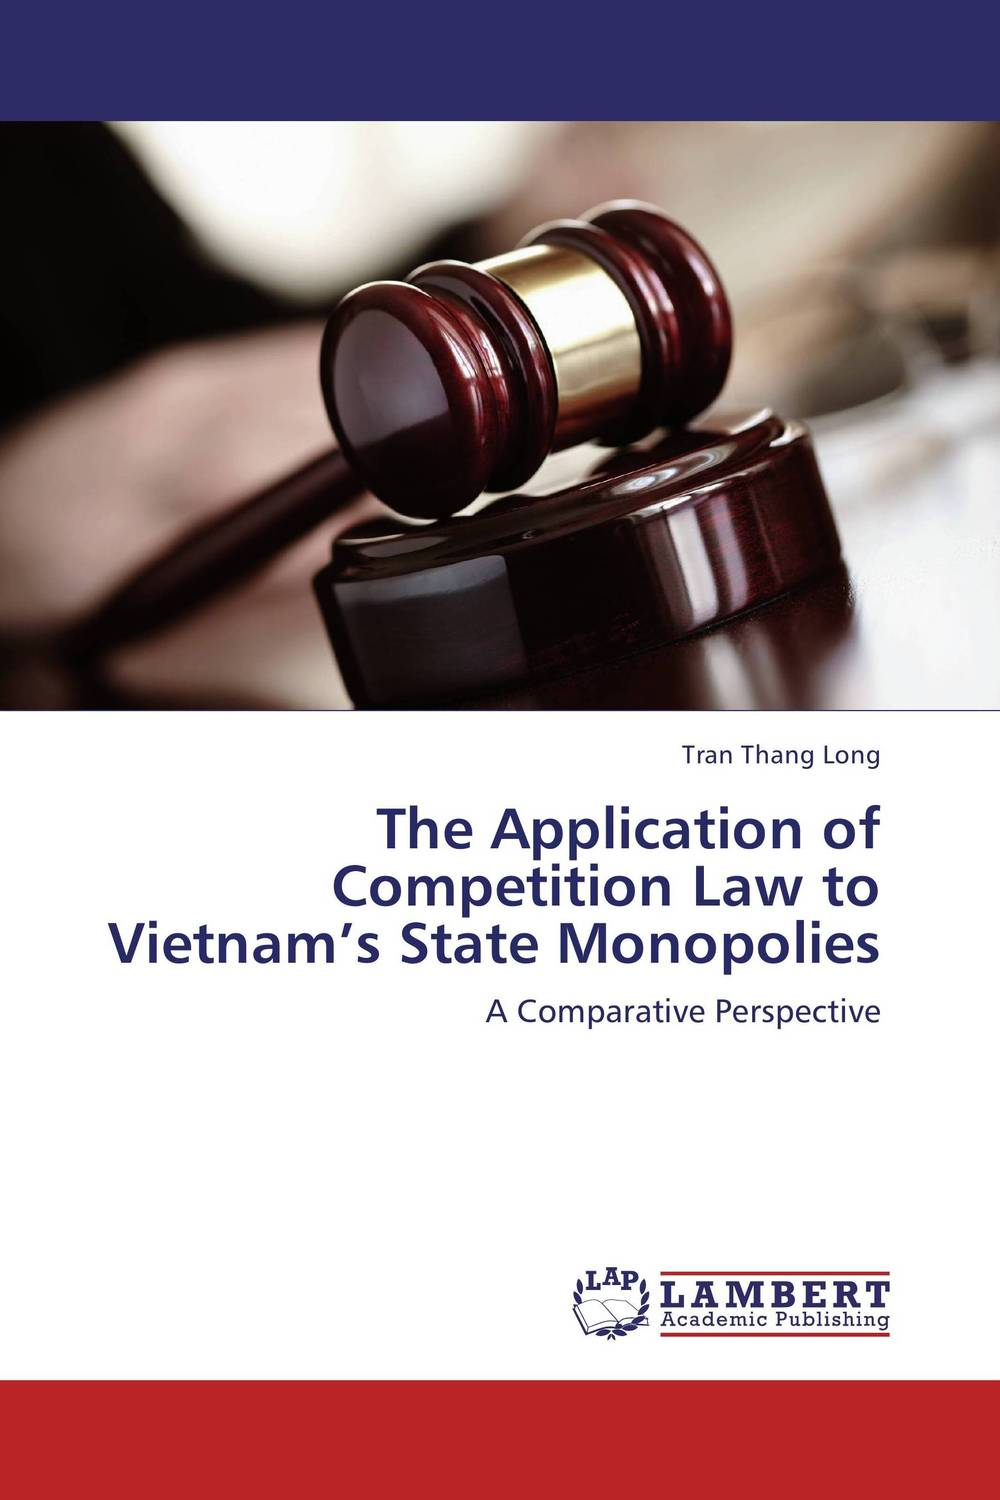 The Application of Competition Law to Vietnam's State Monopolies